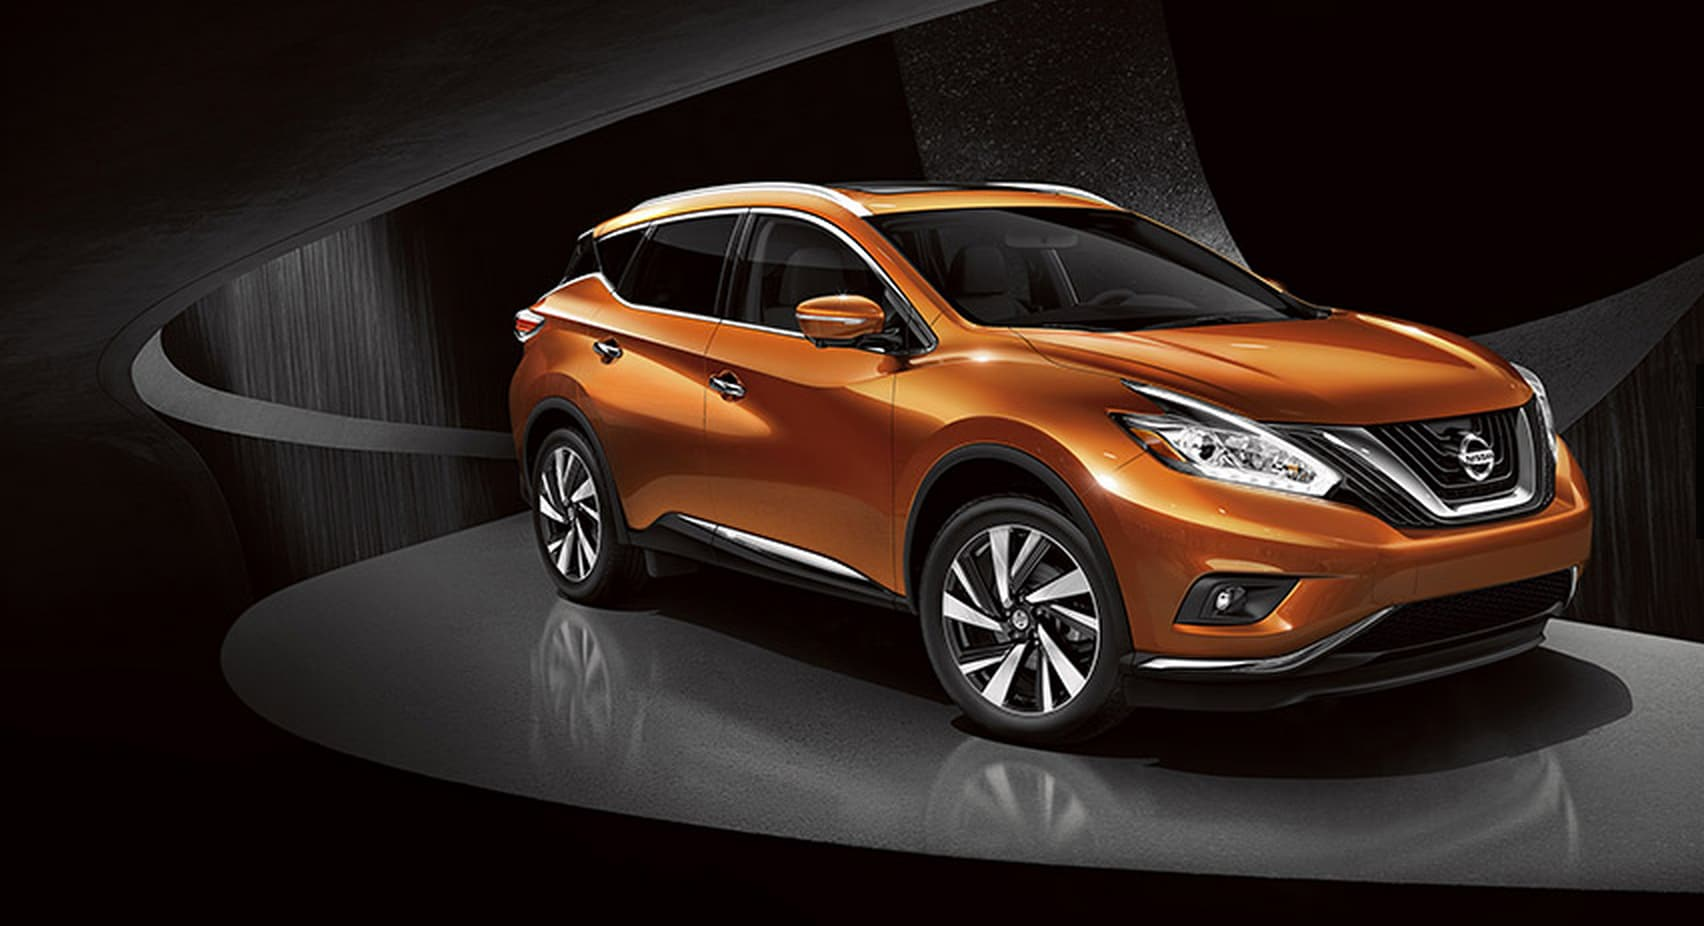 2015 nissan murano gillman nissan in rosenberg. Black Bedroom Furniture Sets. Home Design Ideas